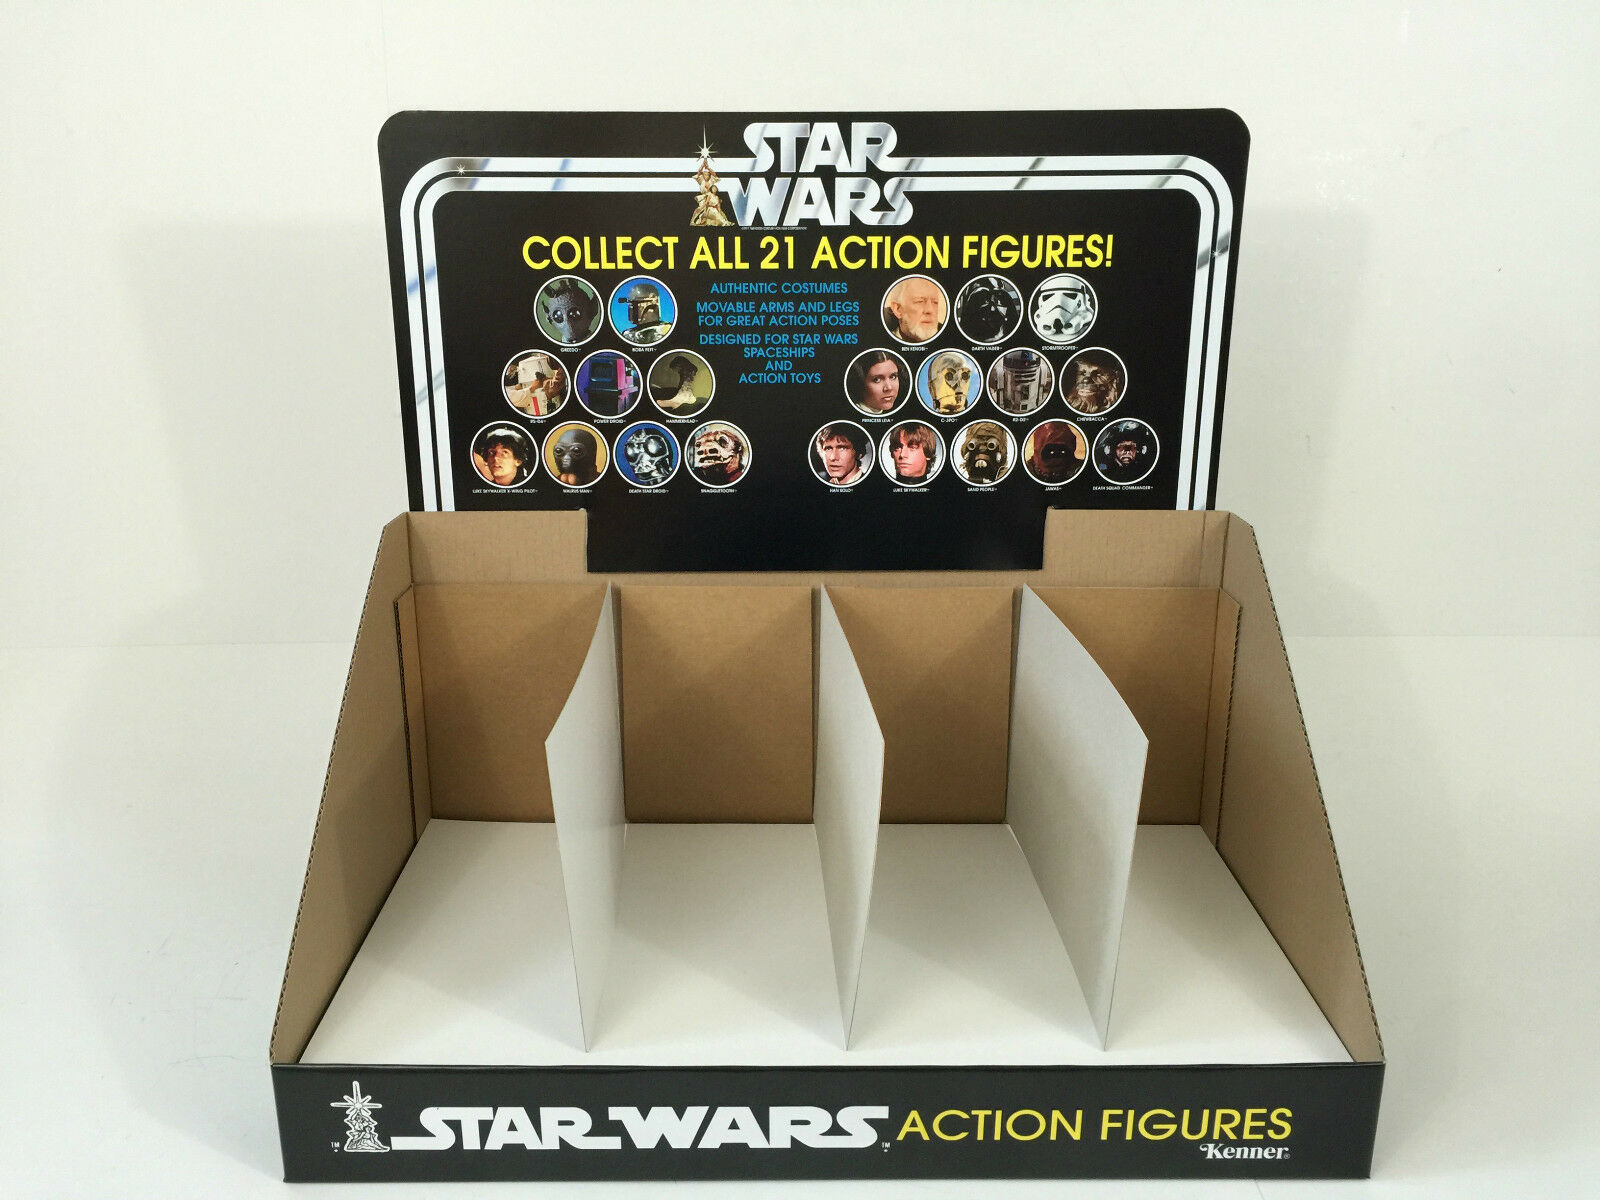 Reproduction vintage star wars collect all 21 display header and bin